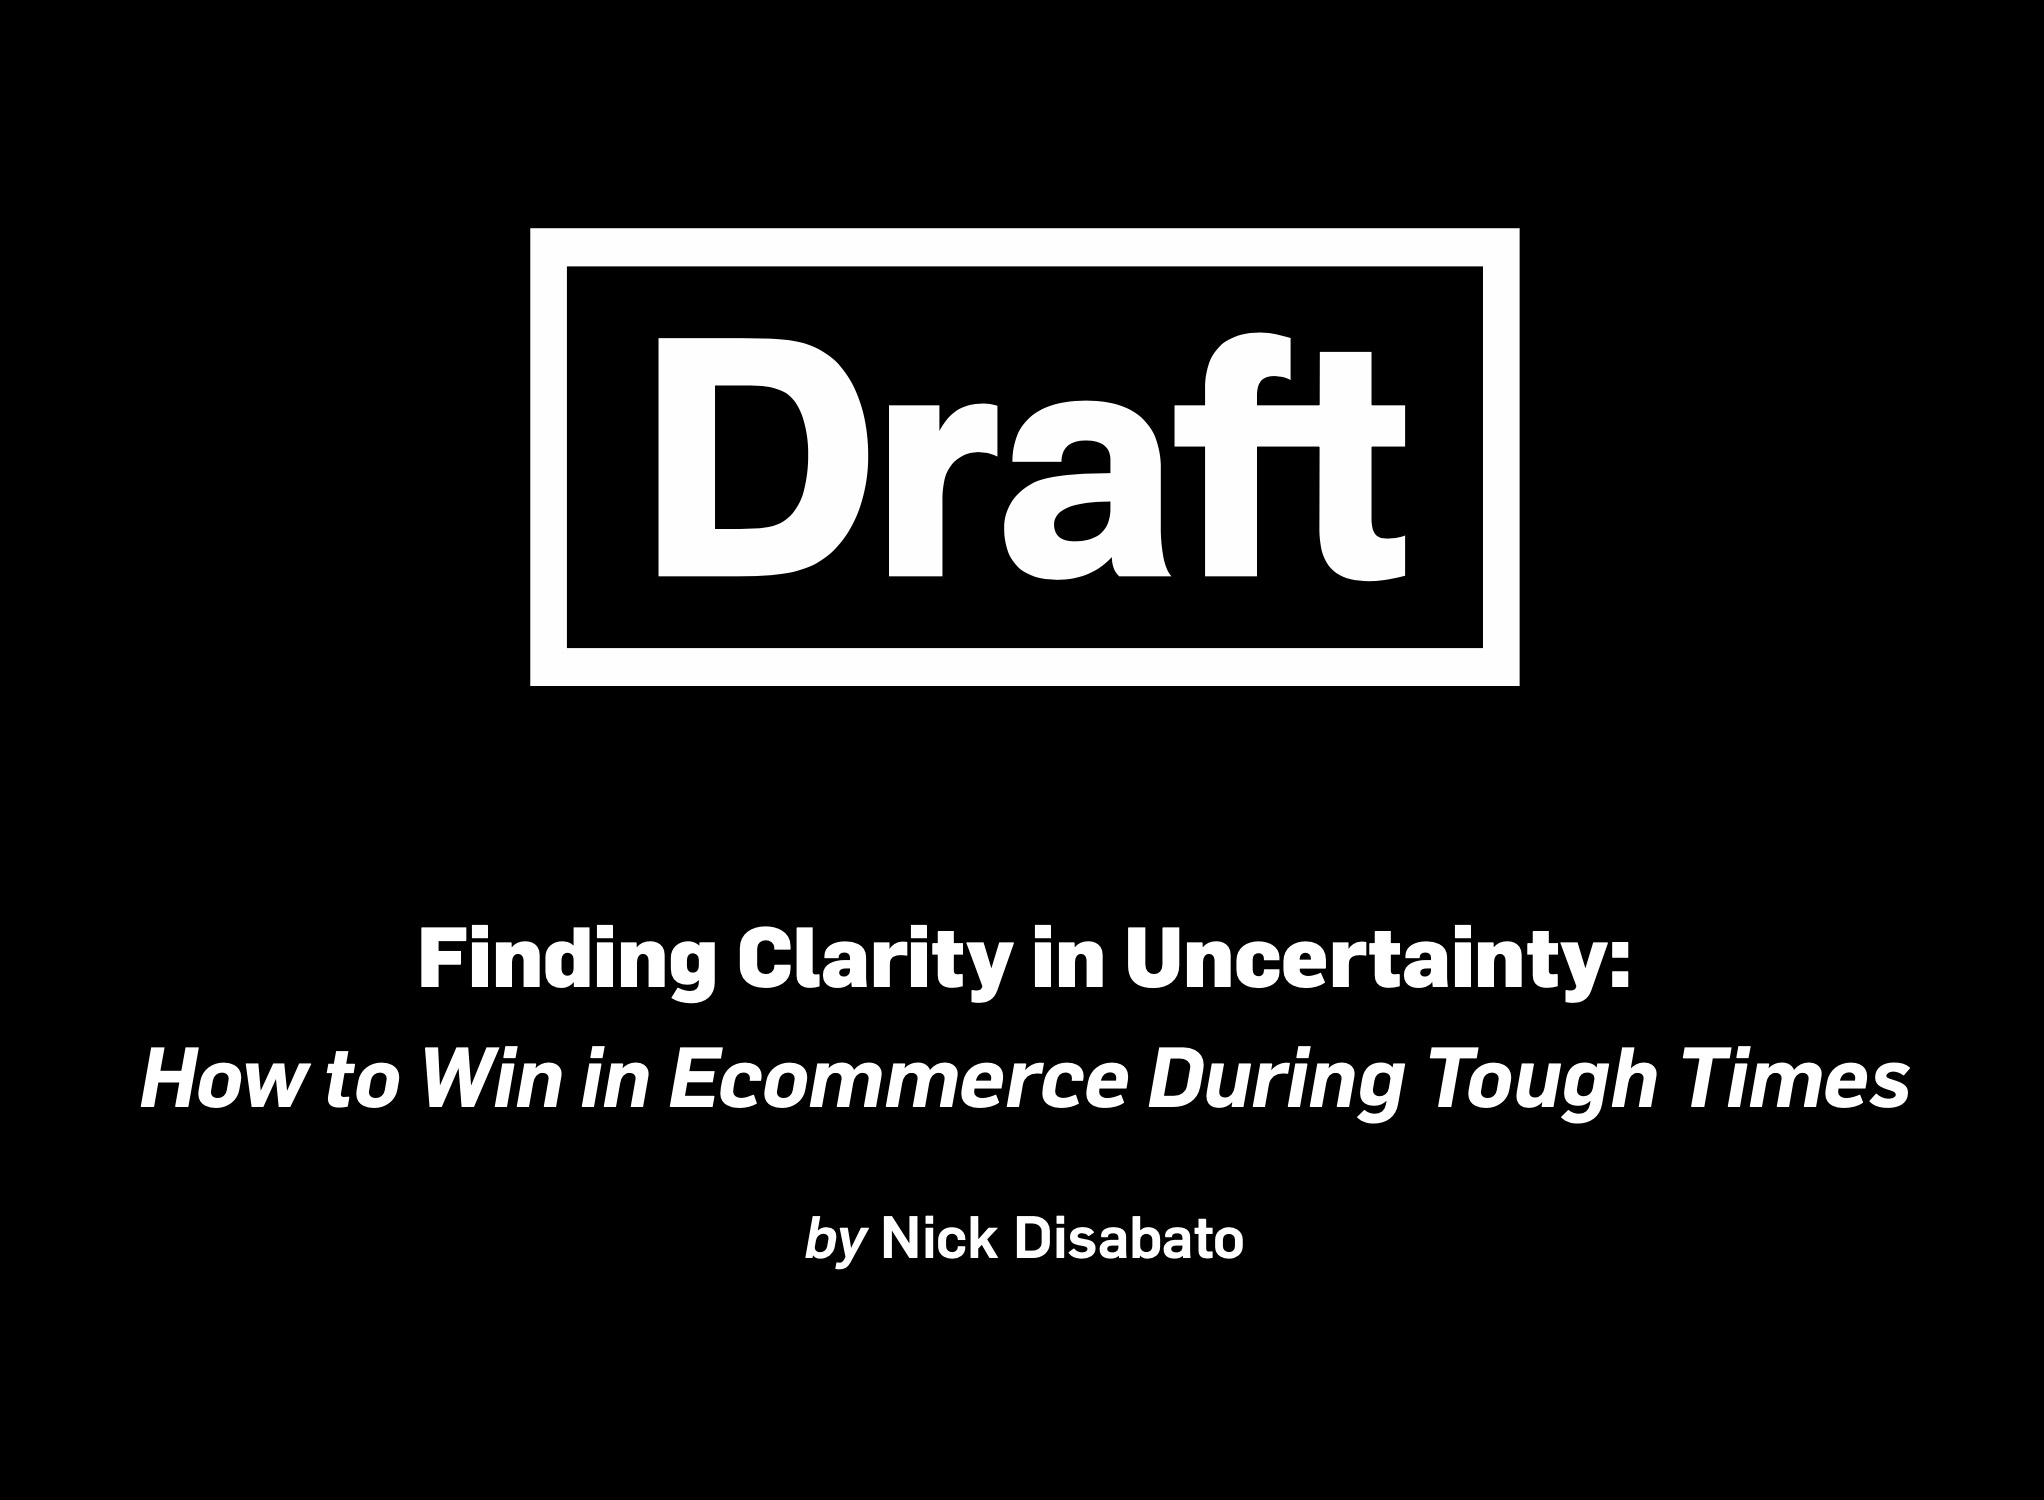 Finding Clarity in Uncertainty: How to Win in Ecommerce During Tough Times